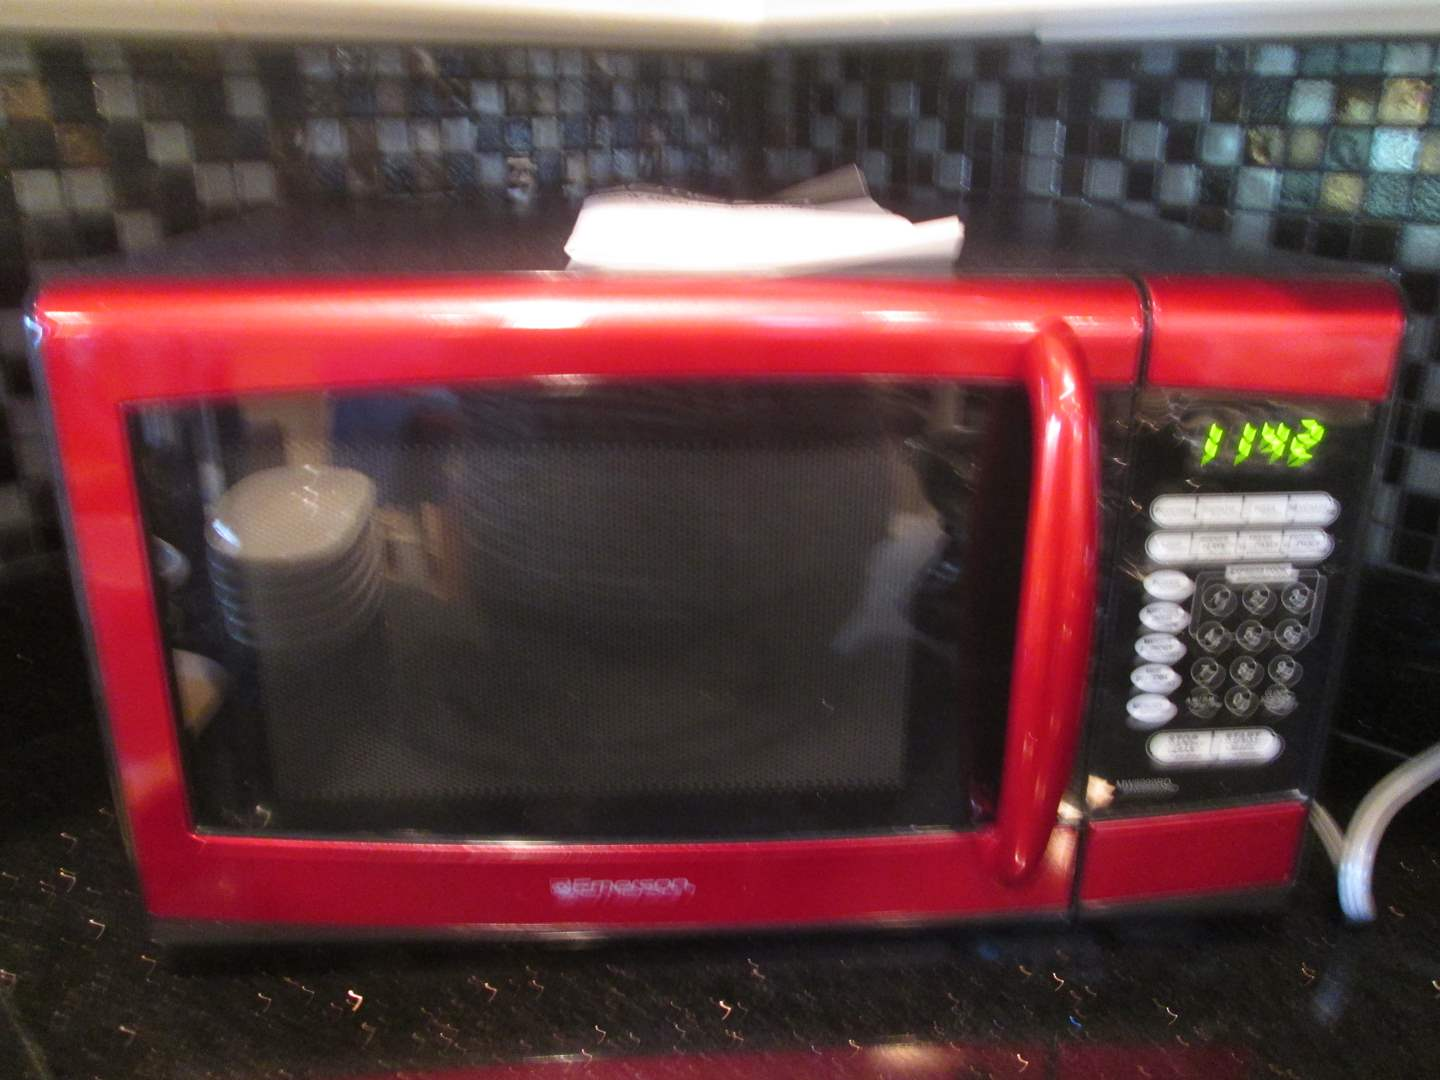 Lot # 92 - Emerson Microwave #900W (main image)